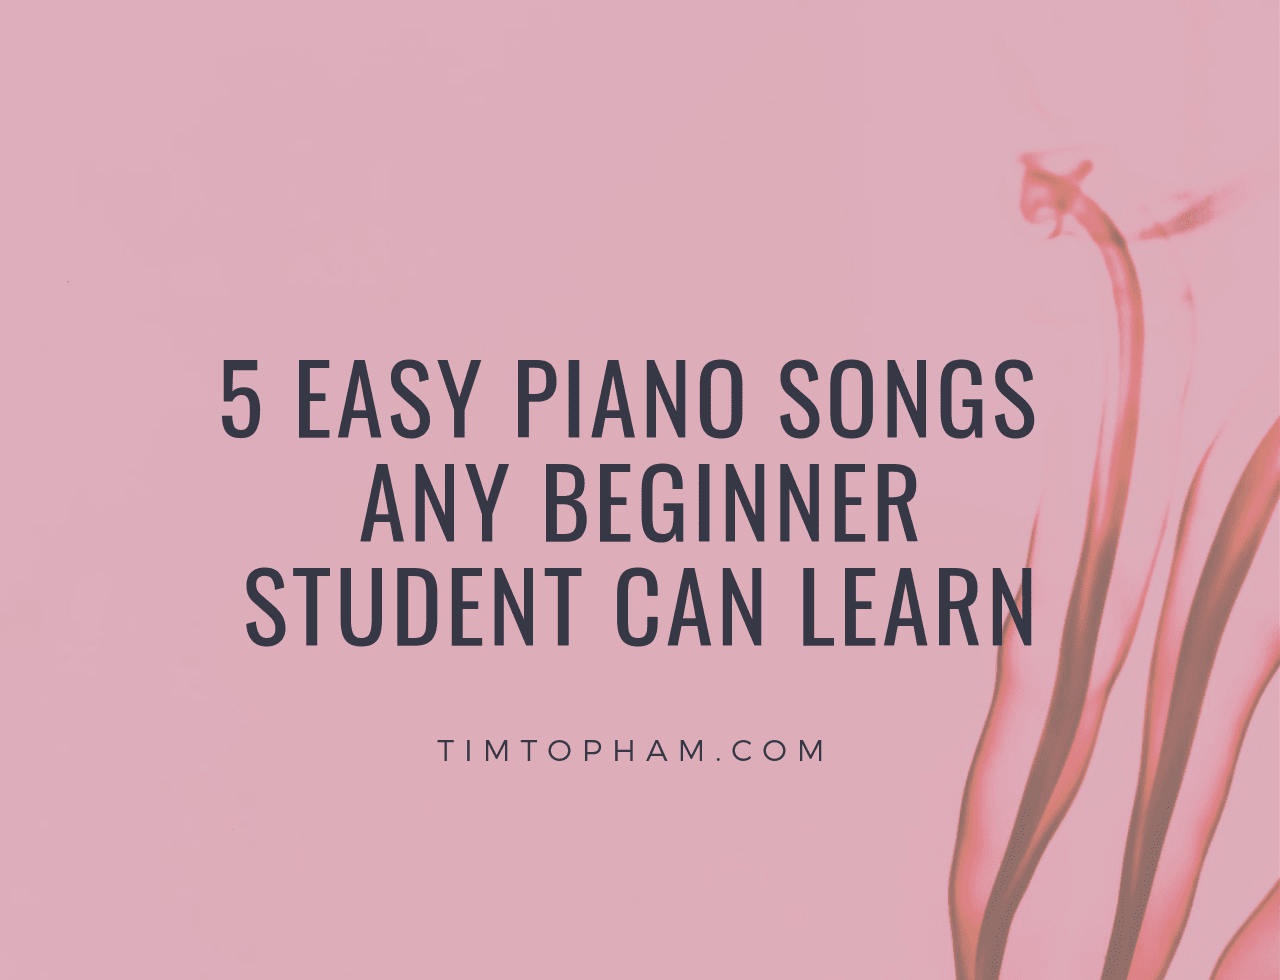 5 Easy Piano Songs any Beginner Student Can Learn - Creative